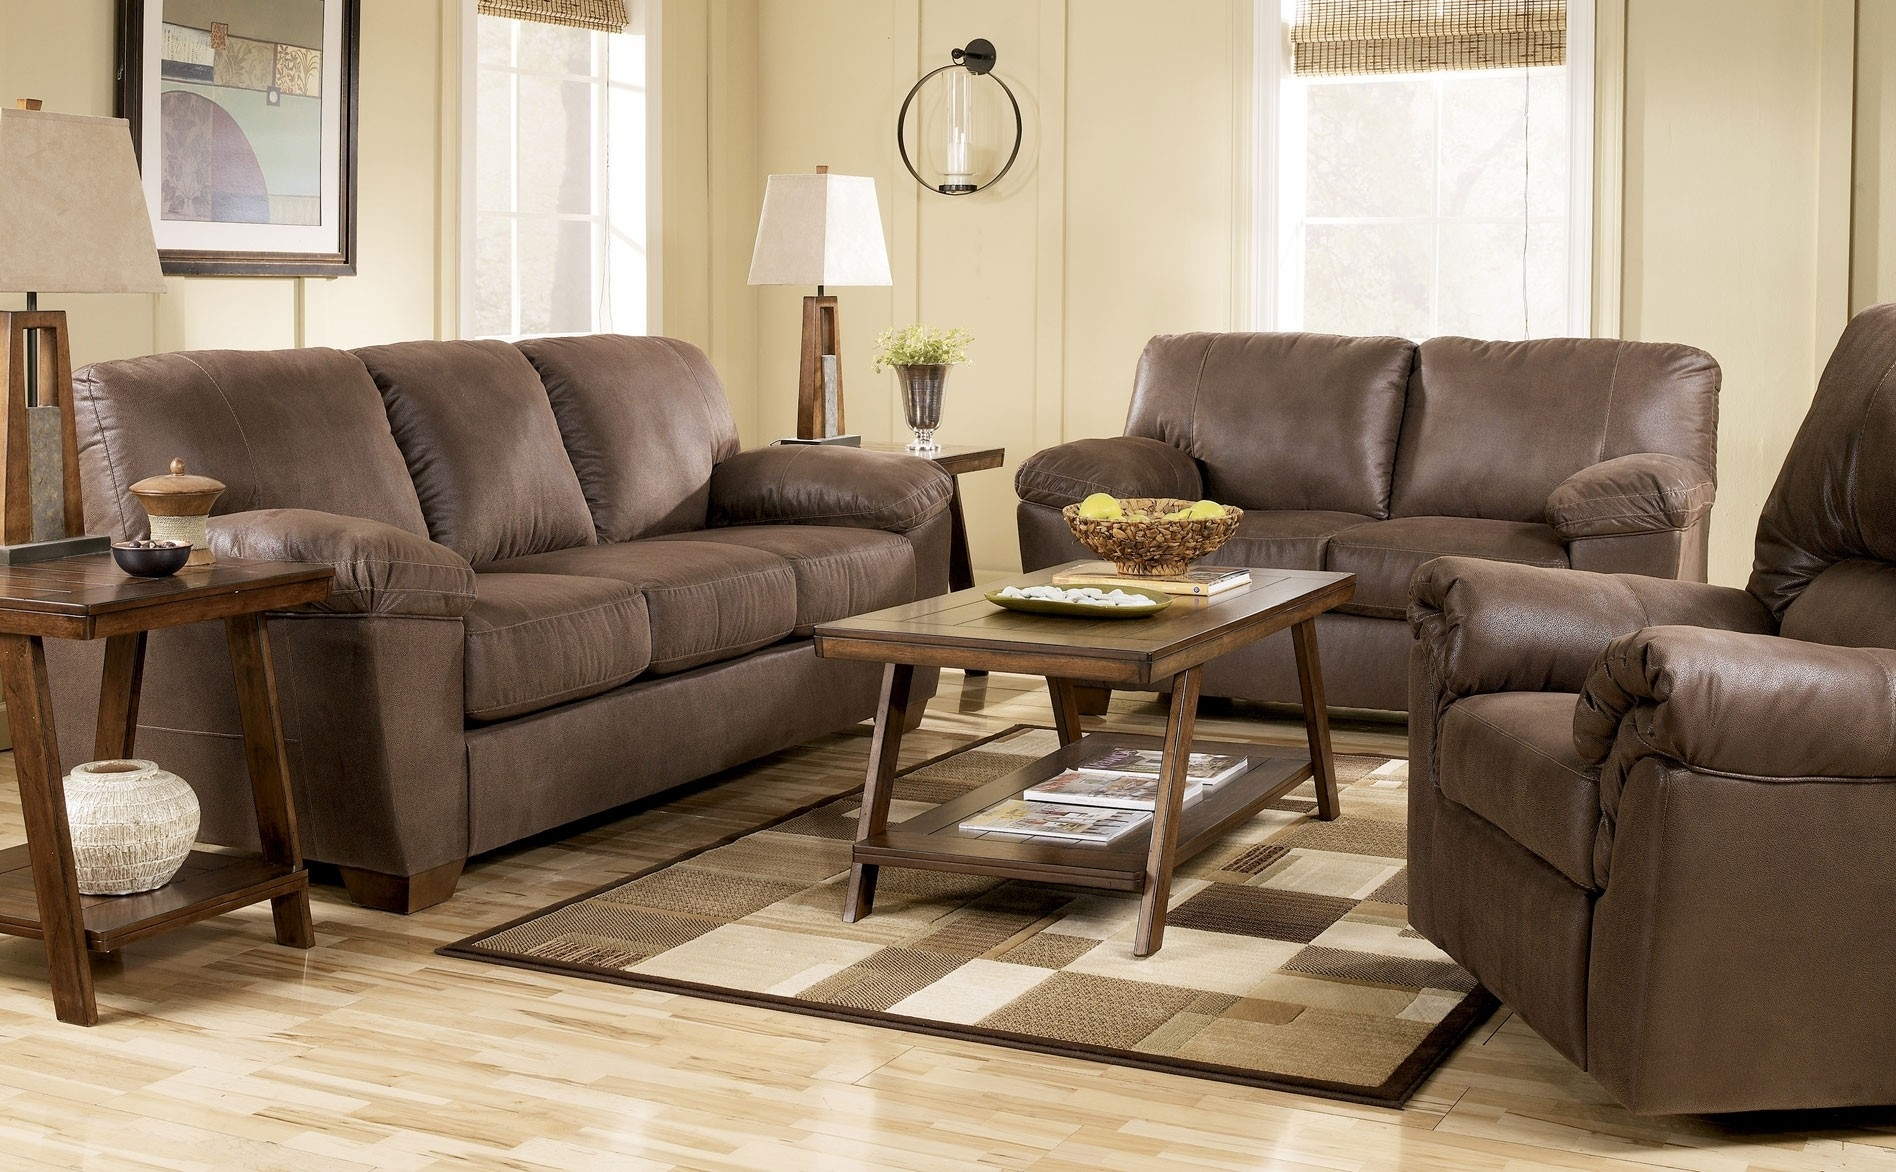 Furniture : Recliner Glider Chair Leather Sectional Couch Corner in Eugene Oregon Sectional Sofas (Image 2 of 10)